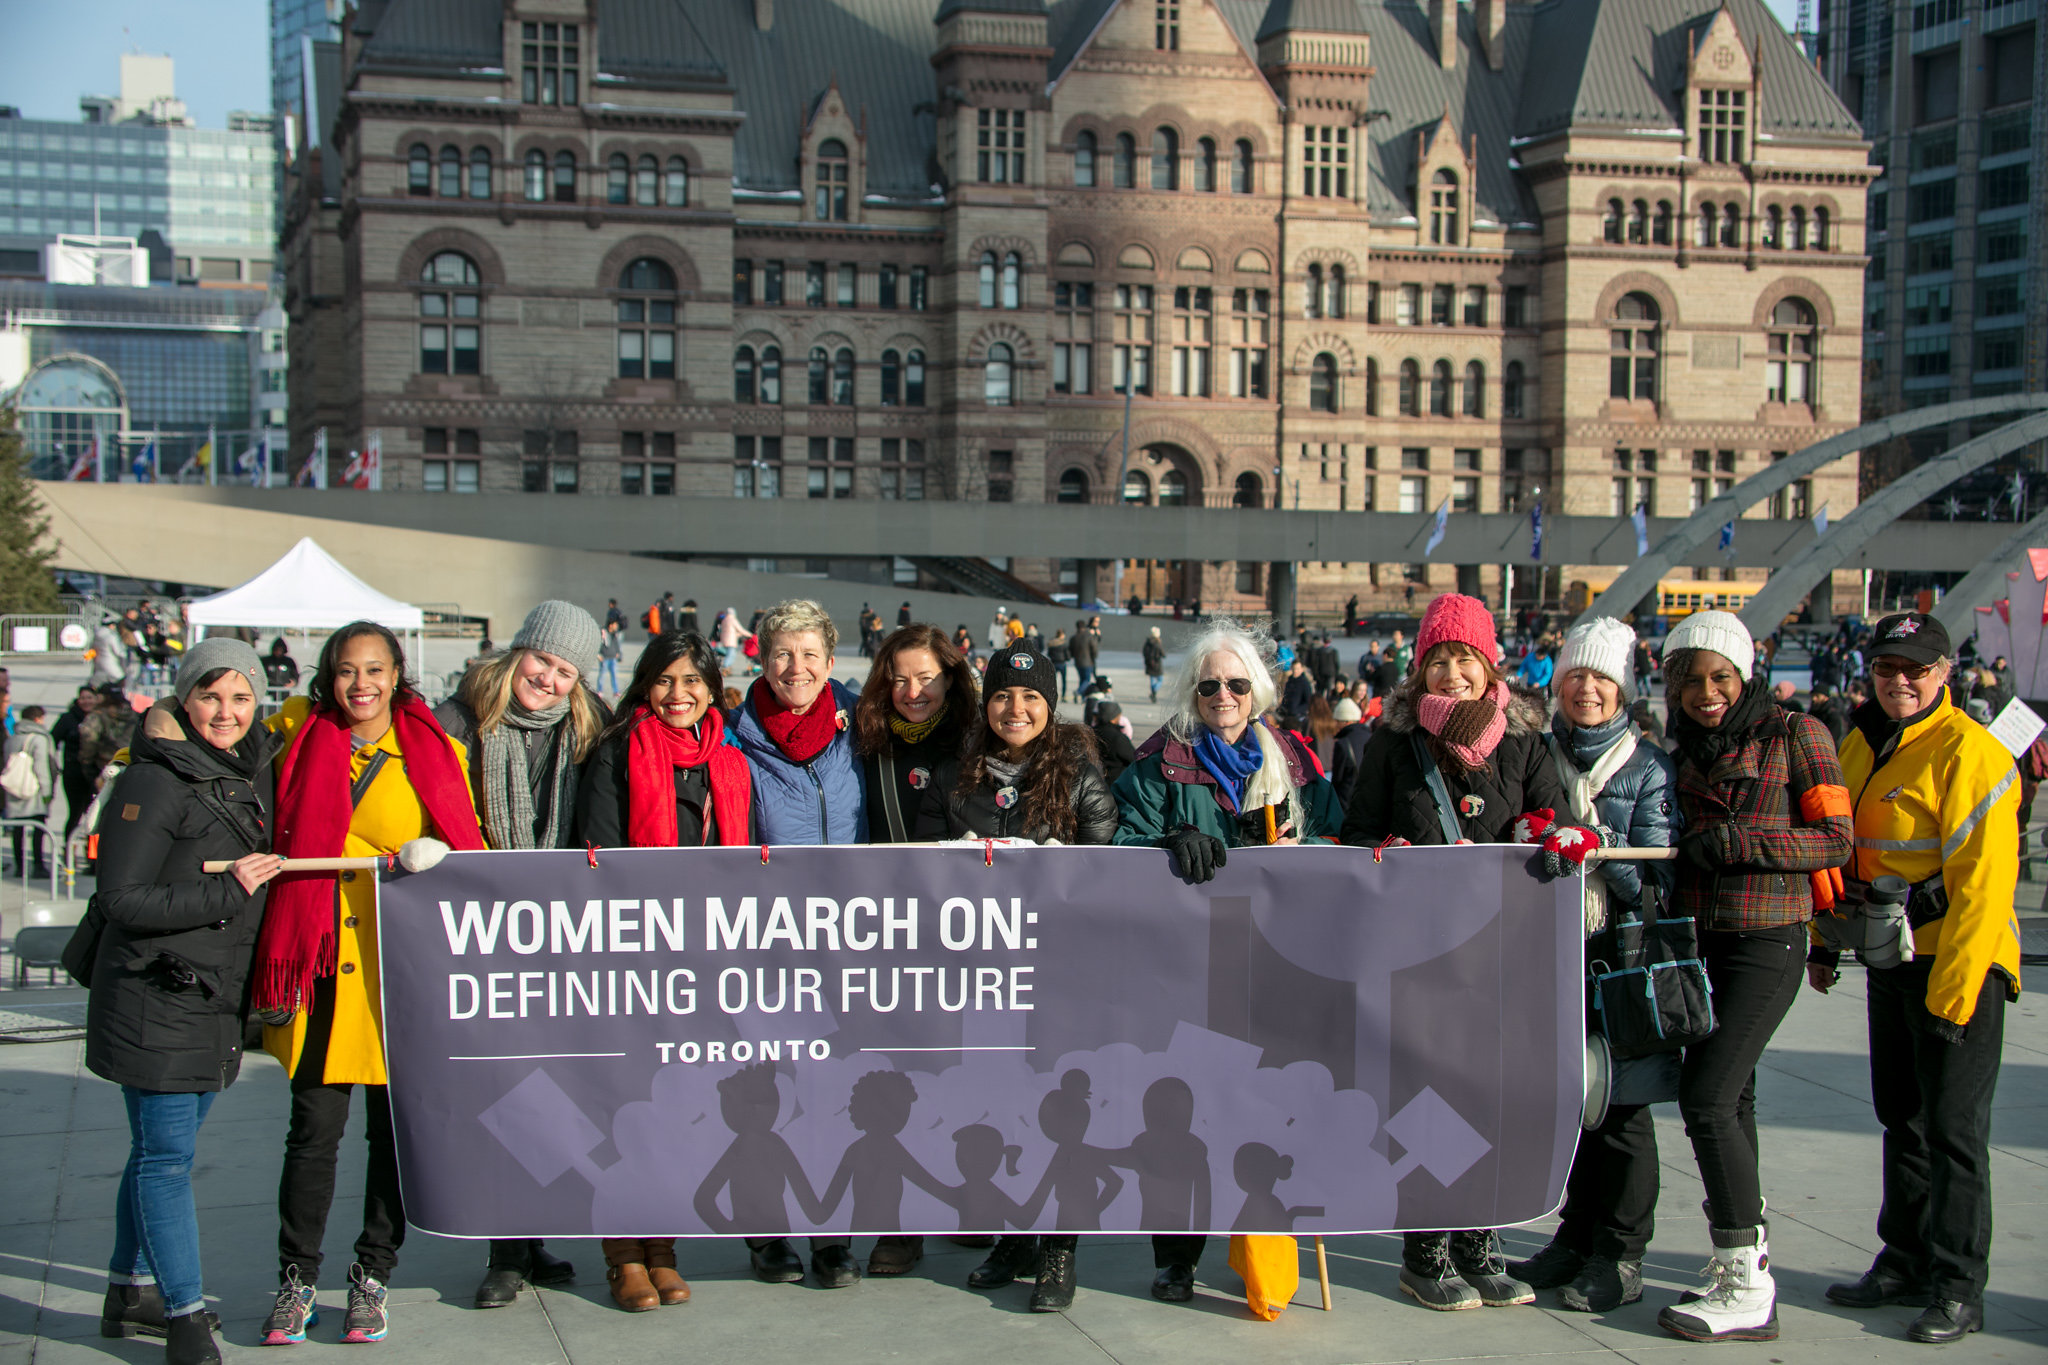 Women March On: Toronto Committee